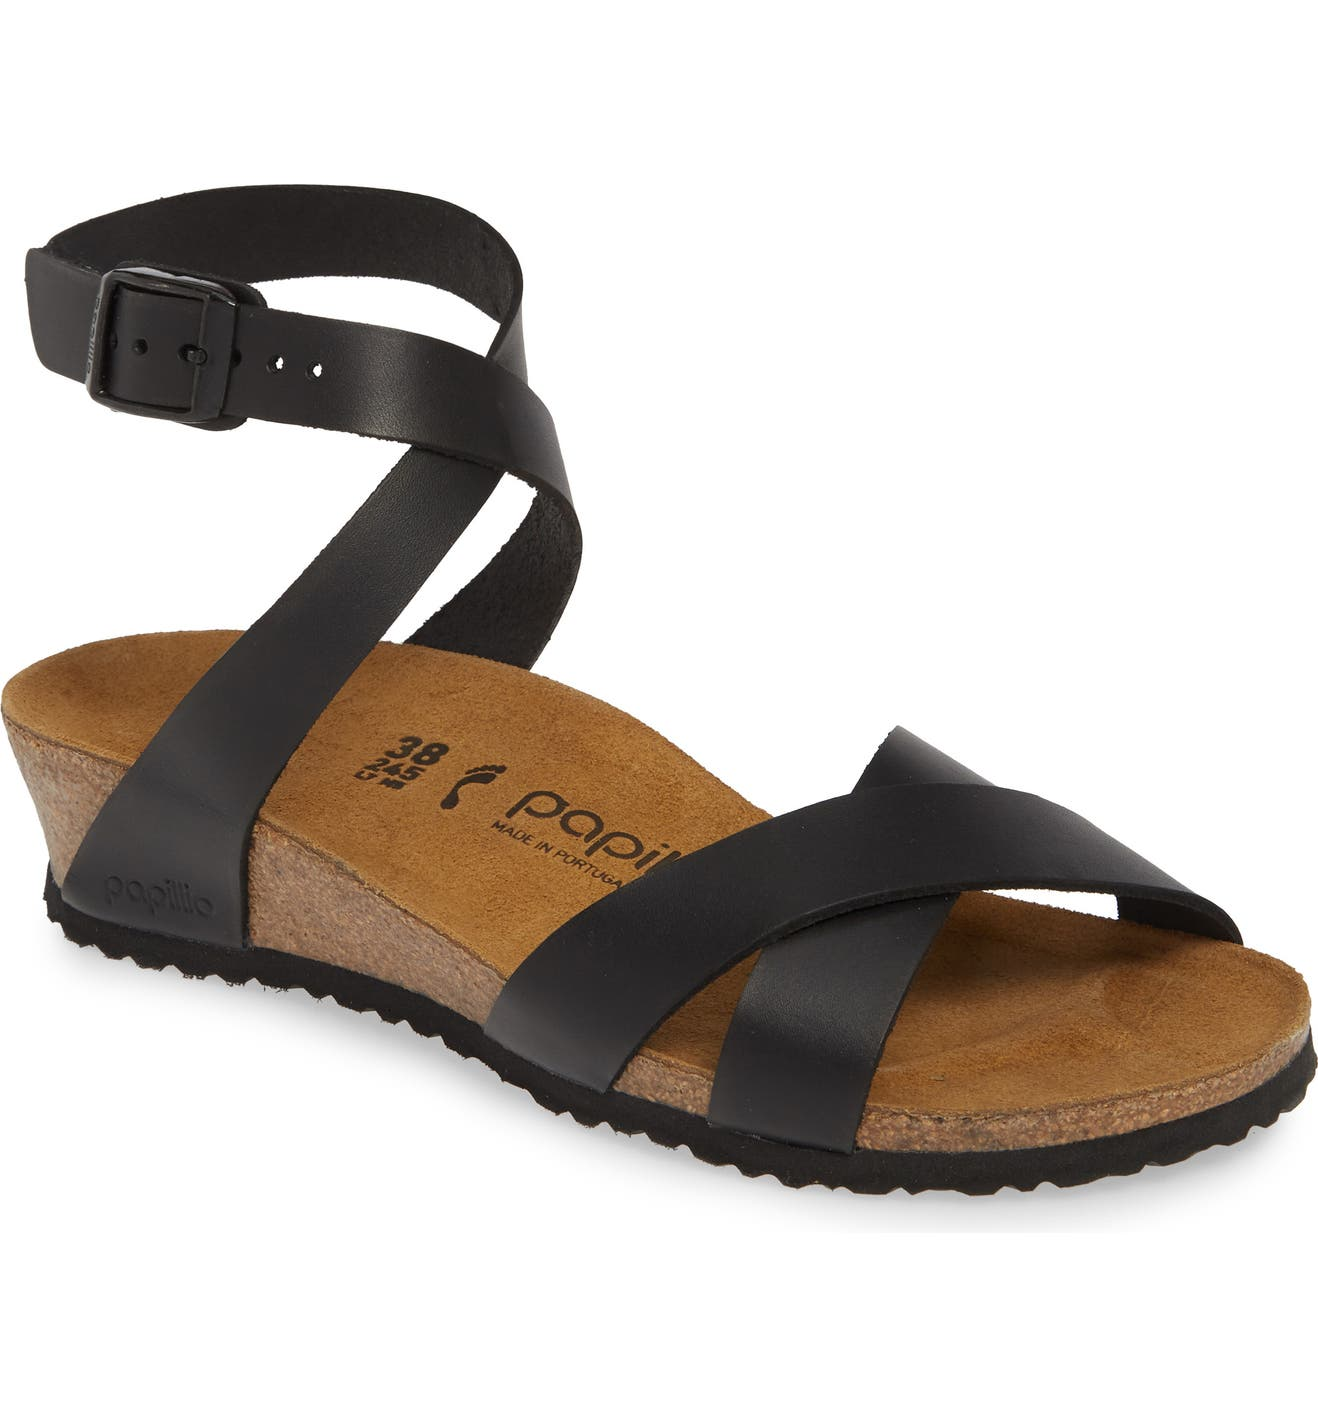 2f2d4397859 Papillio by Birkenstock Lola Wedge Sandal (Women)